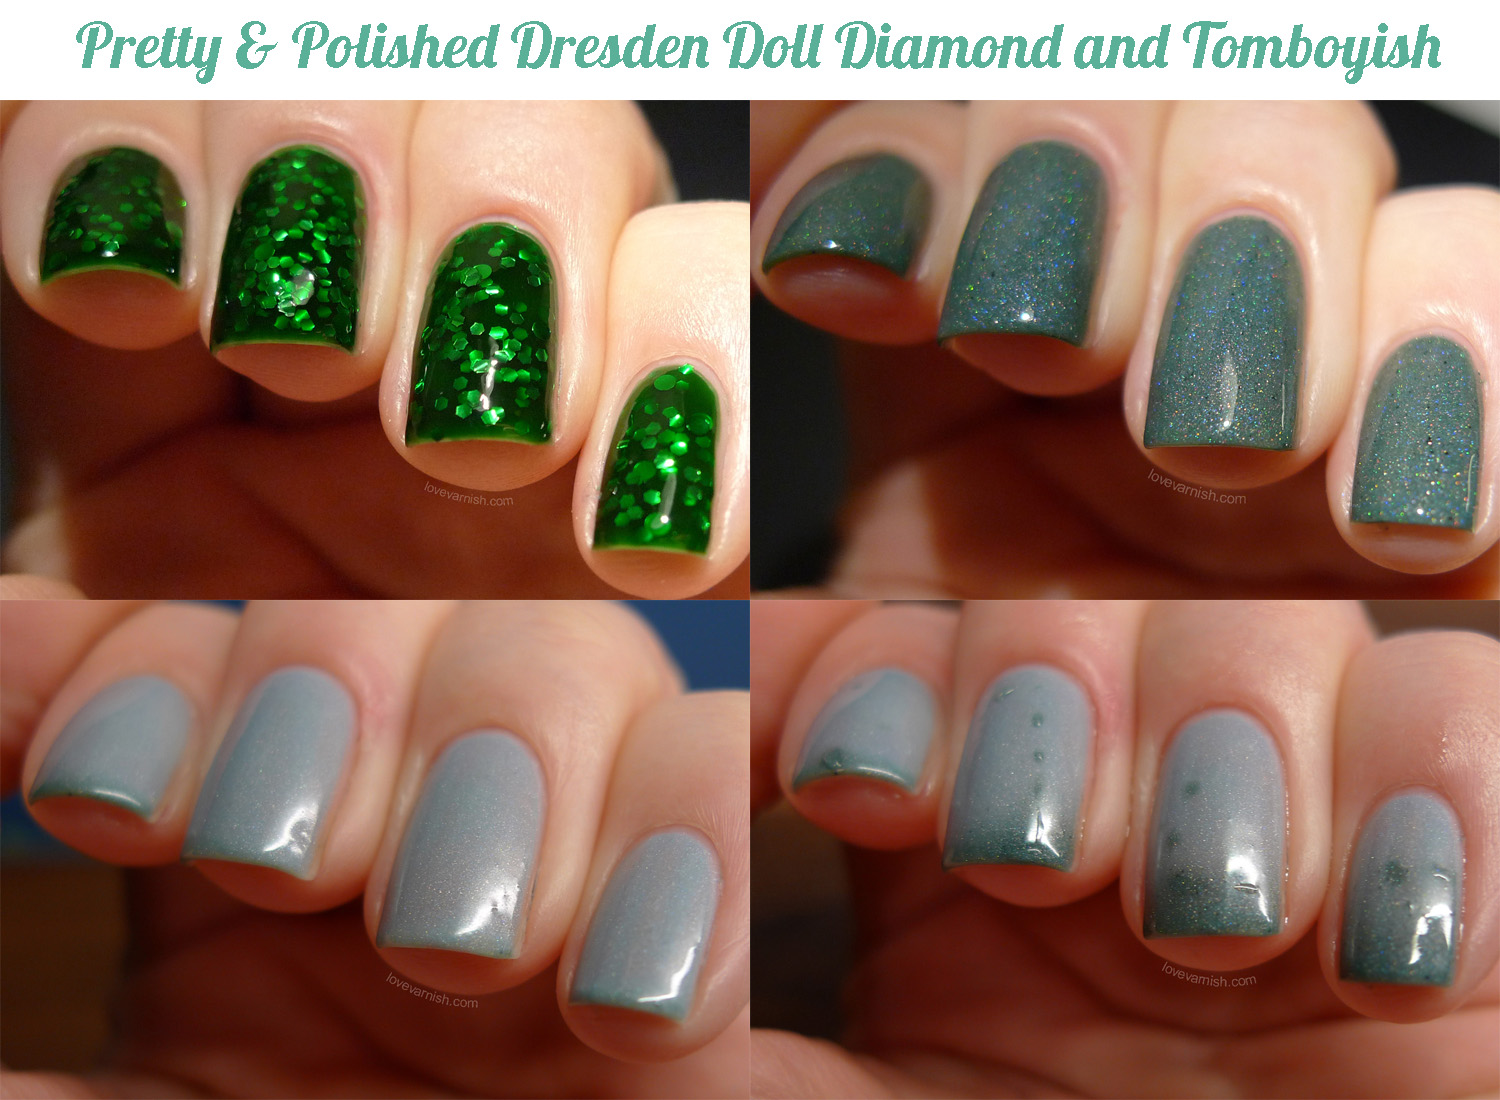 Pretty & Polished Dresden Doll Diamond and Tomboyish